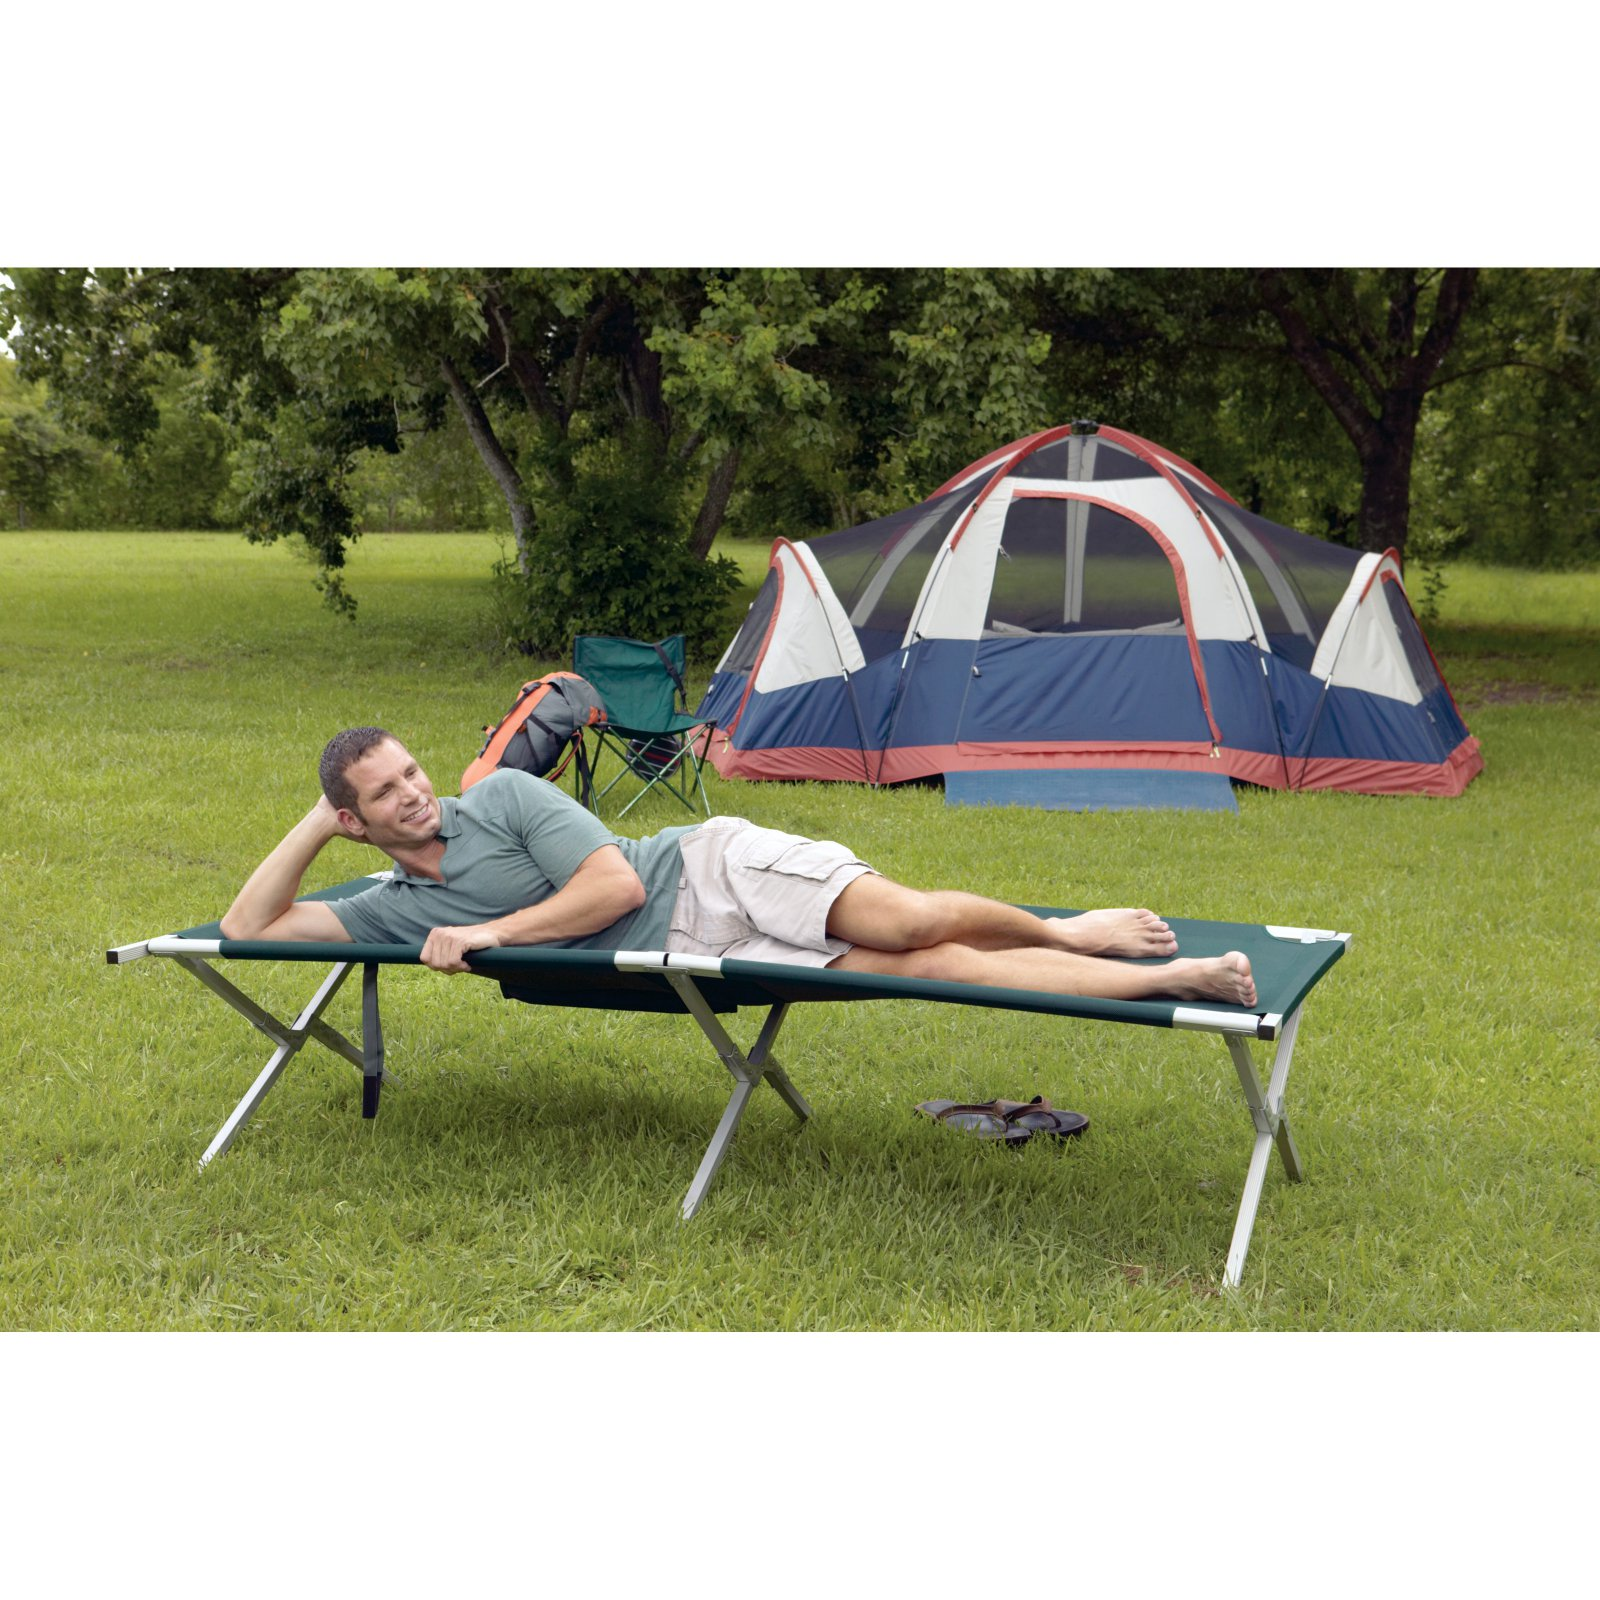 Texsport King Kot Giant Folding Camp Cot by Texasport